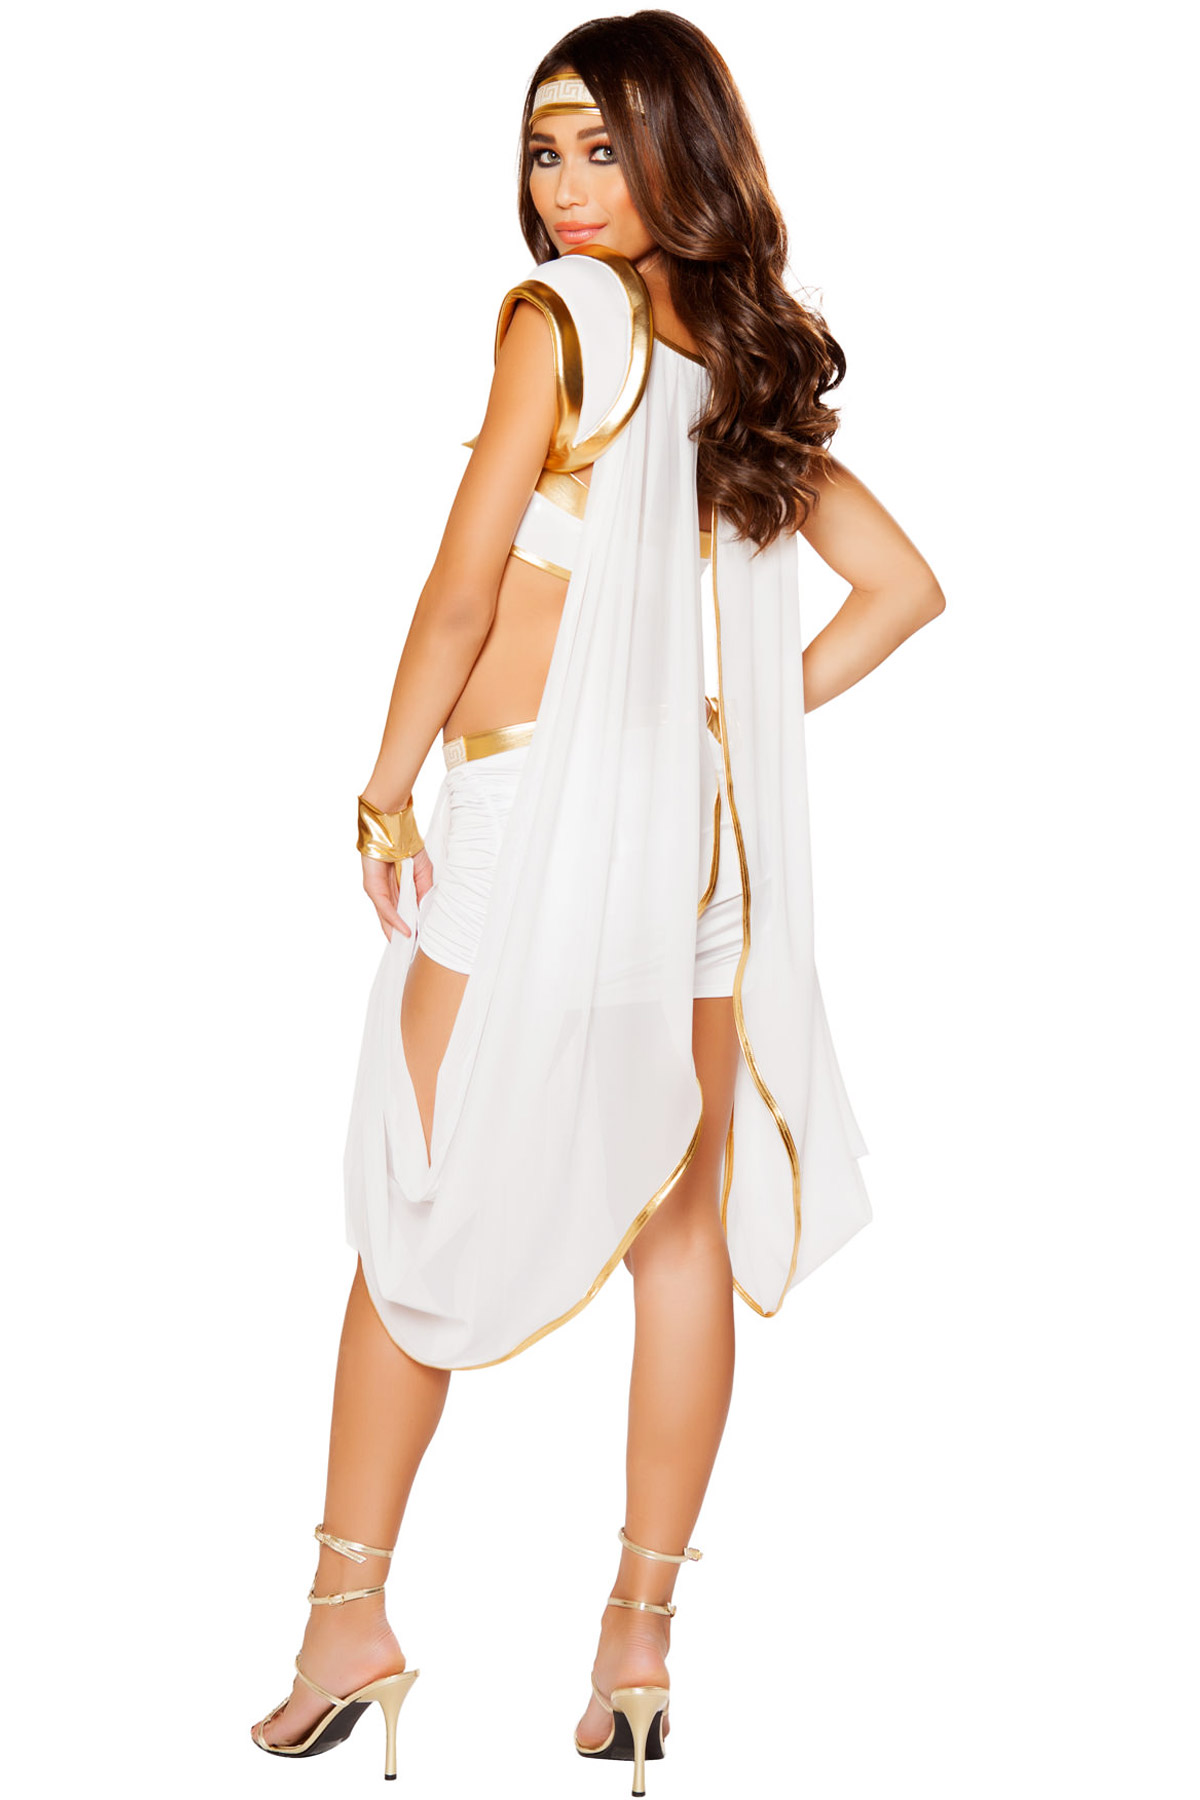 dult Gold Draped Hot Costume Front Roman Detail Queen Olympus Dress Women Of